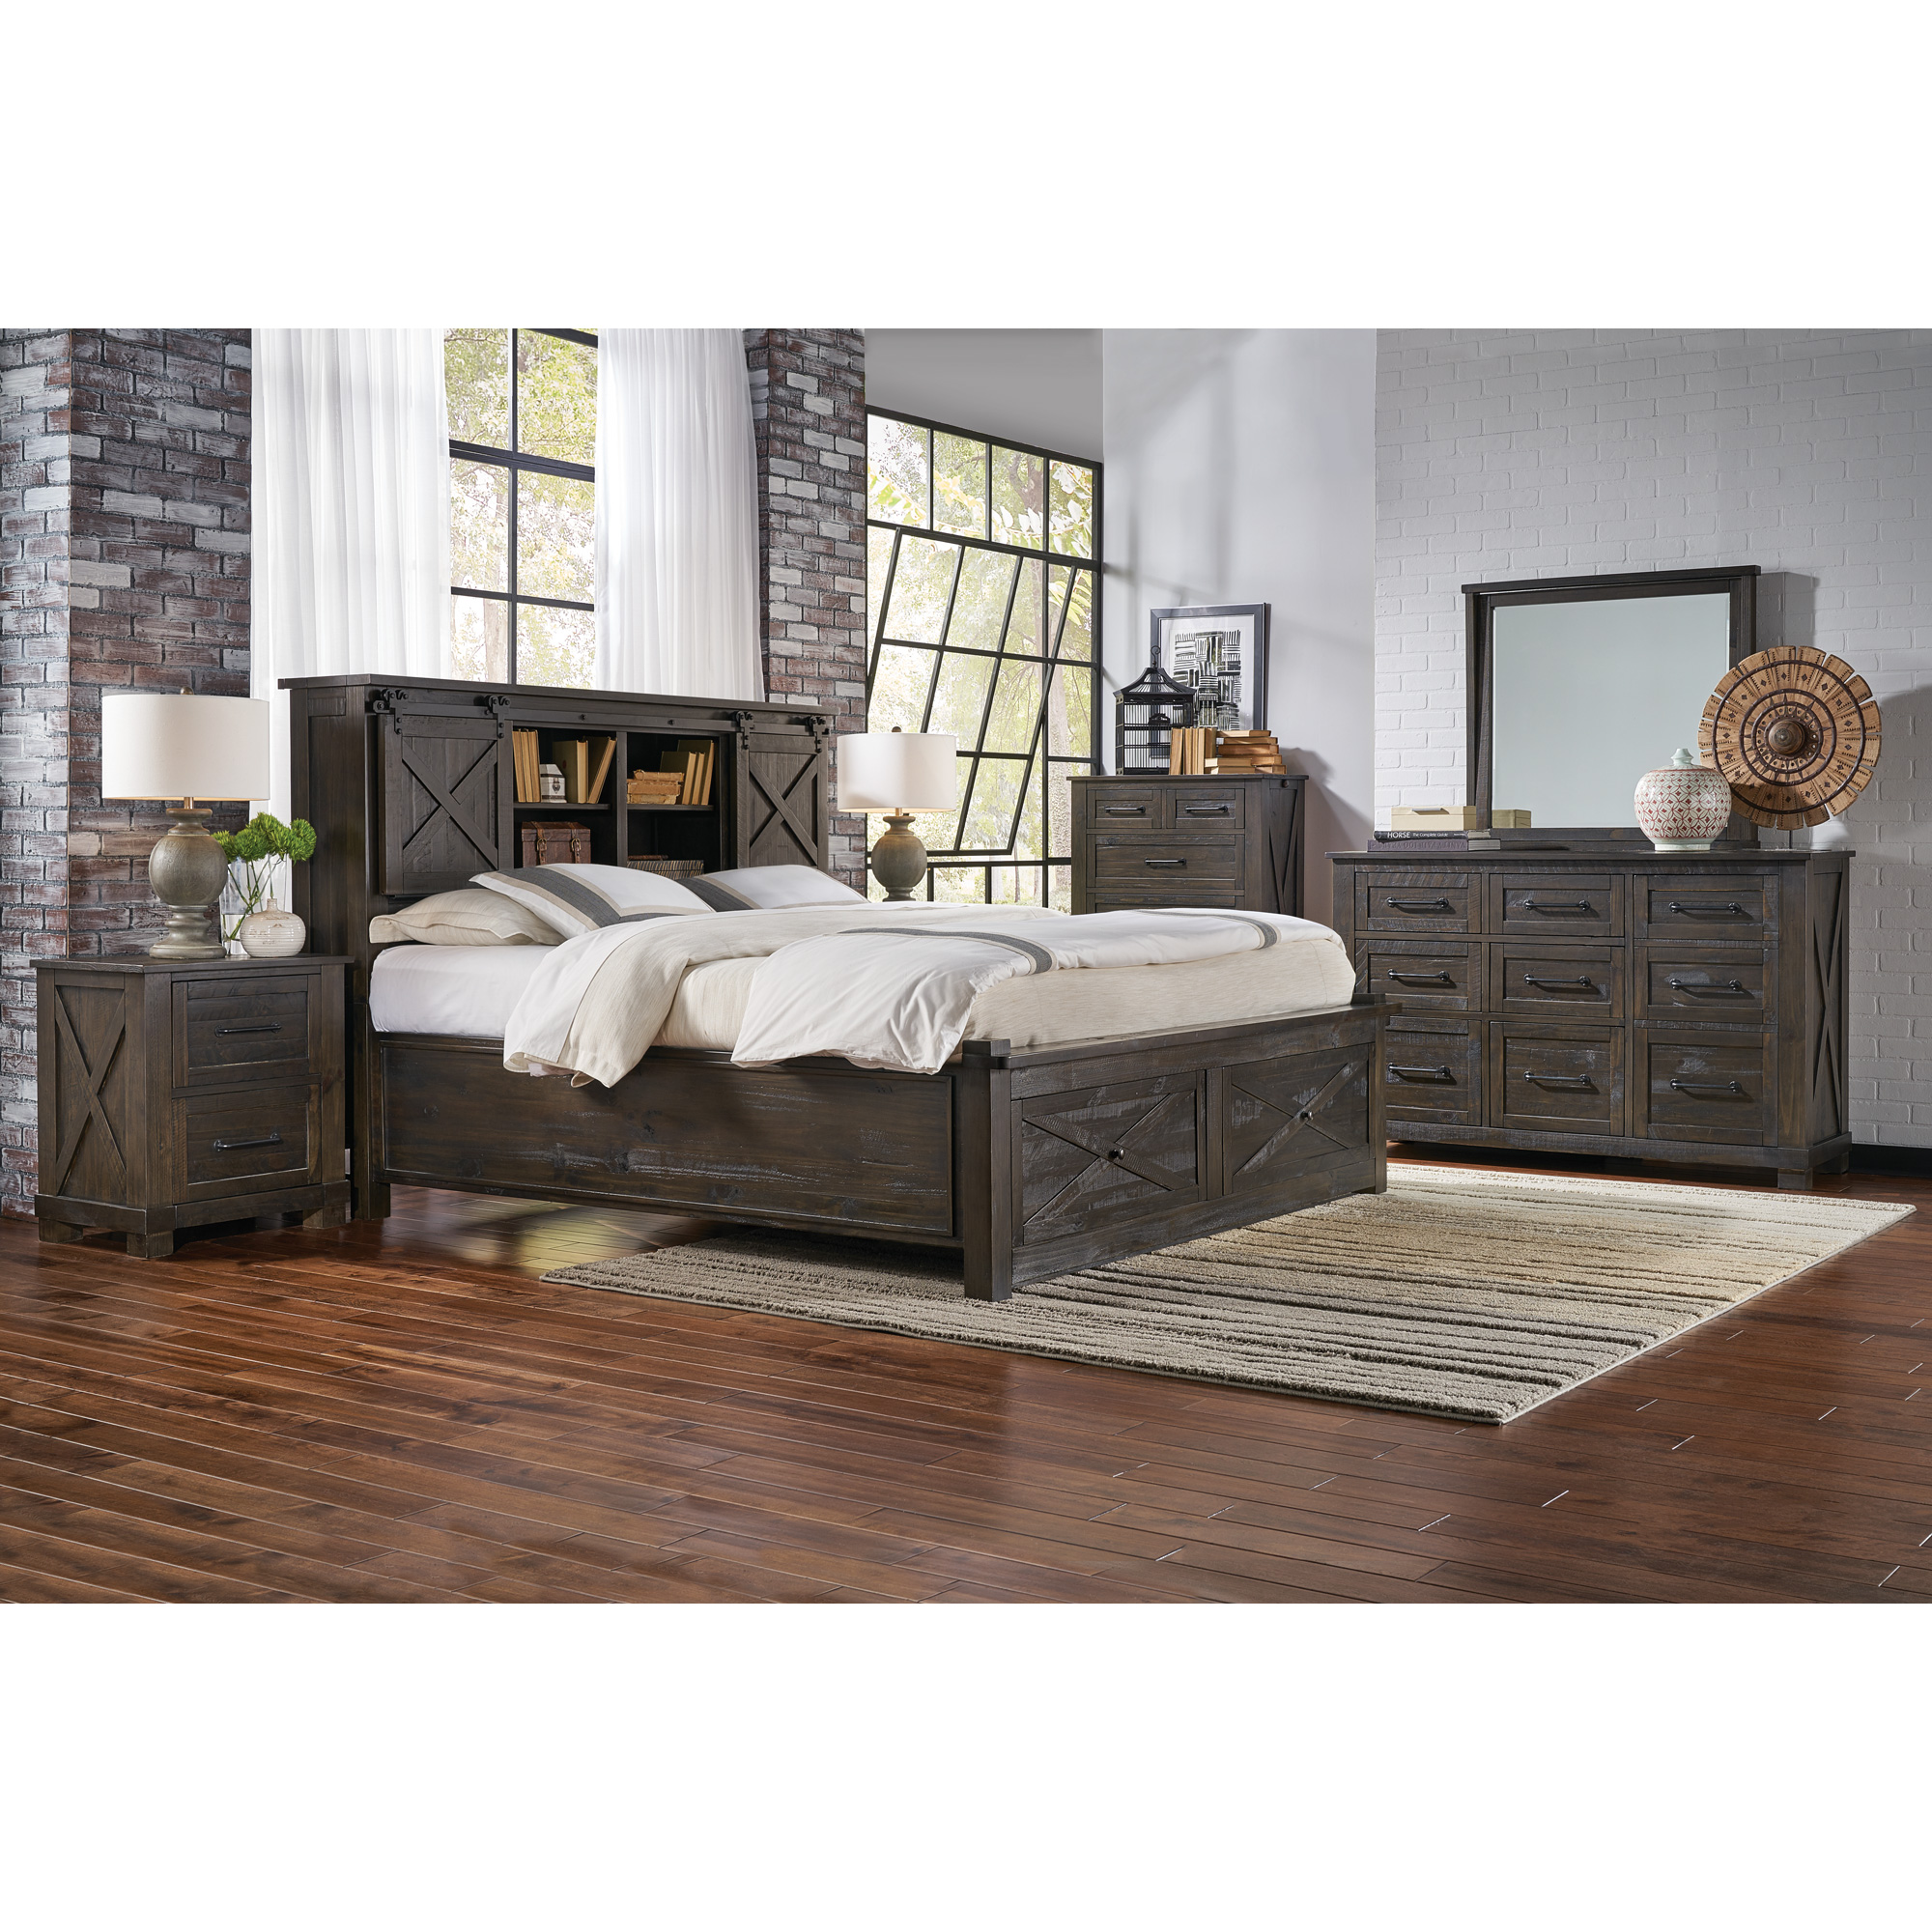 America | Sun Valley Charcoal Queen Storage 4 Piece Room Group Bedroom Set